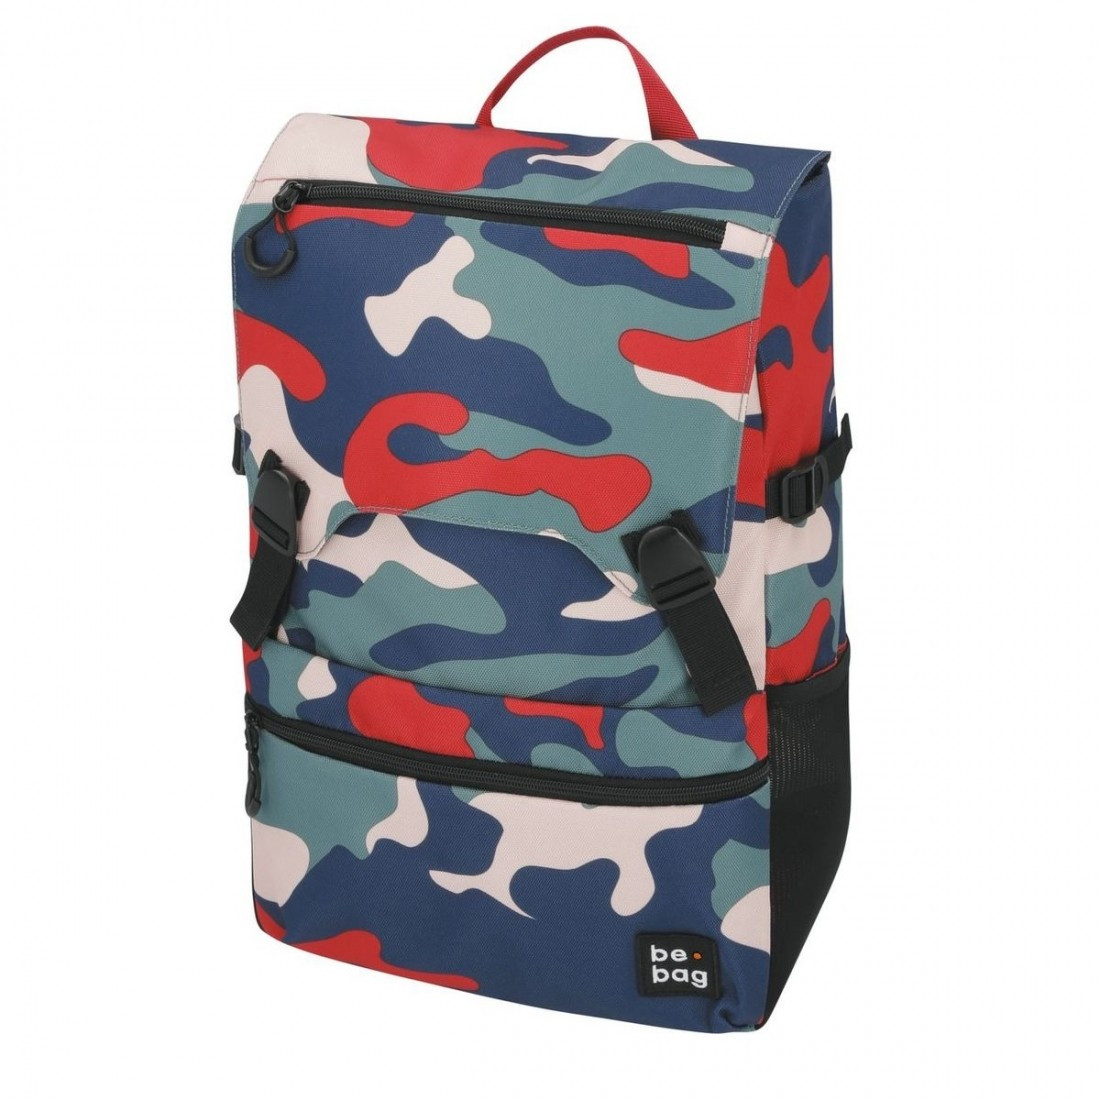 Рюкзак Herlitz be.bag be.smart Camouflage Fun камуфляж